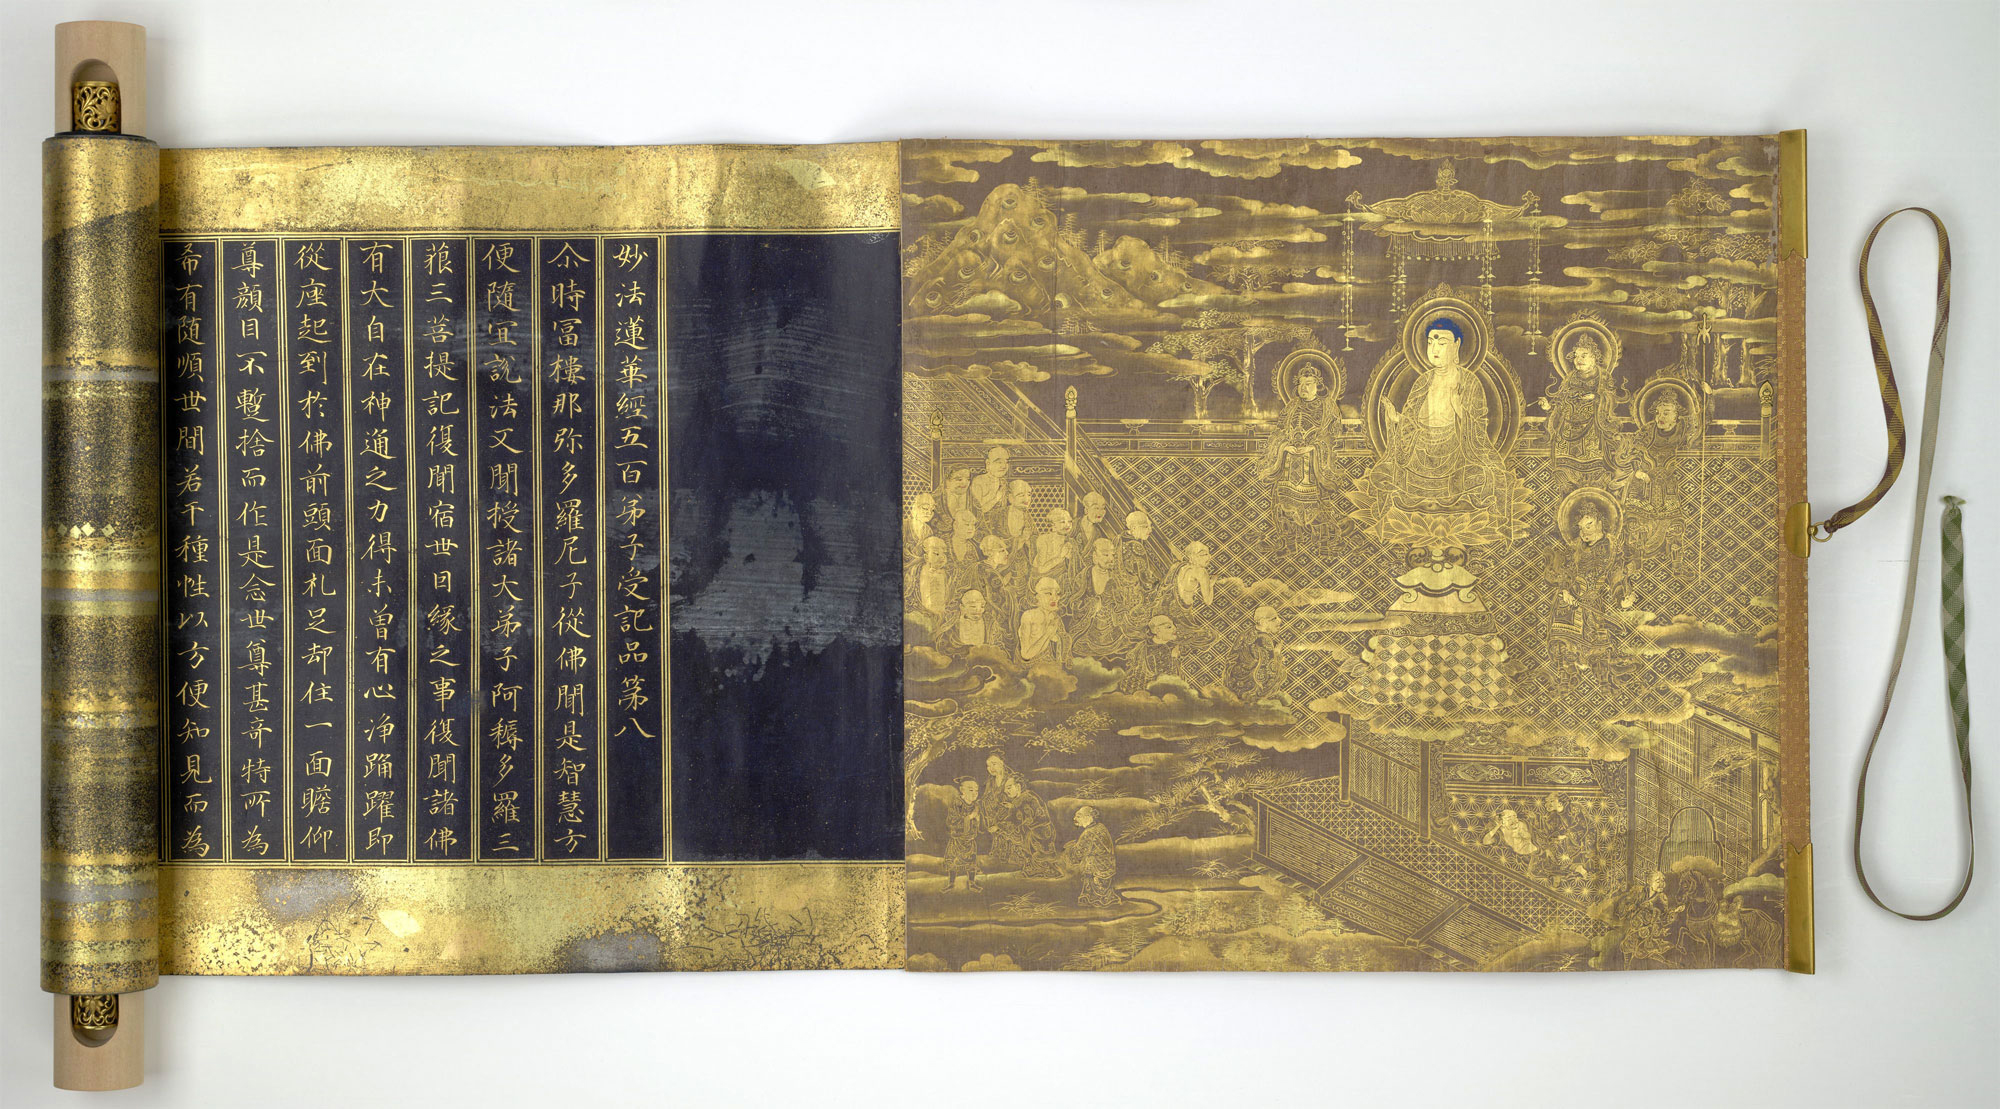 Gold painting of Amitabha Bodhisattva (Amida Buddha) in a scroll containing the Lotus Sutra, Japan 1636 © British Library Board